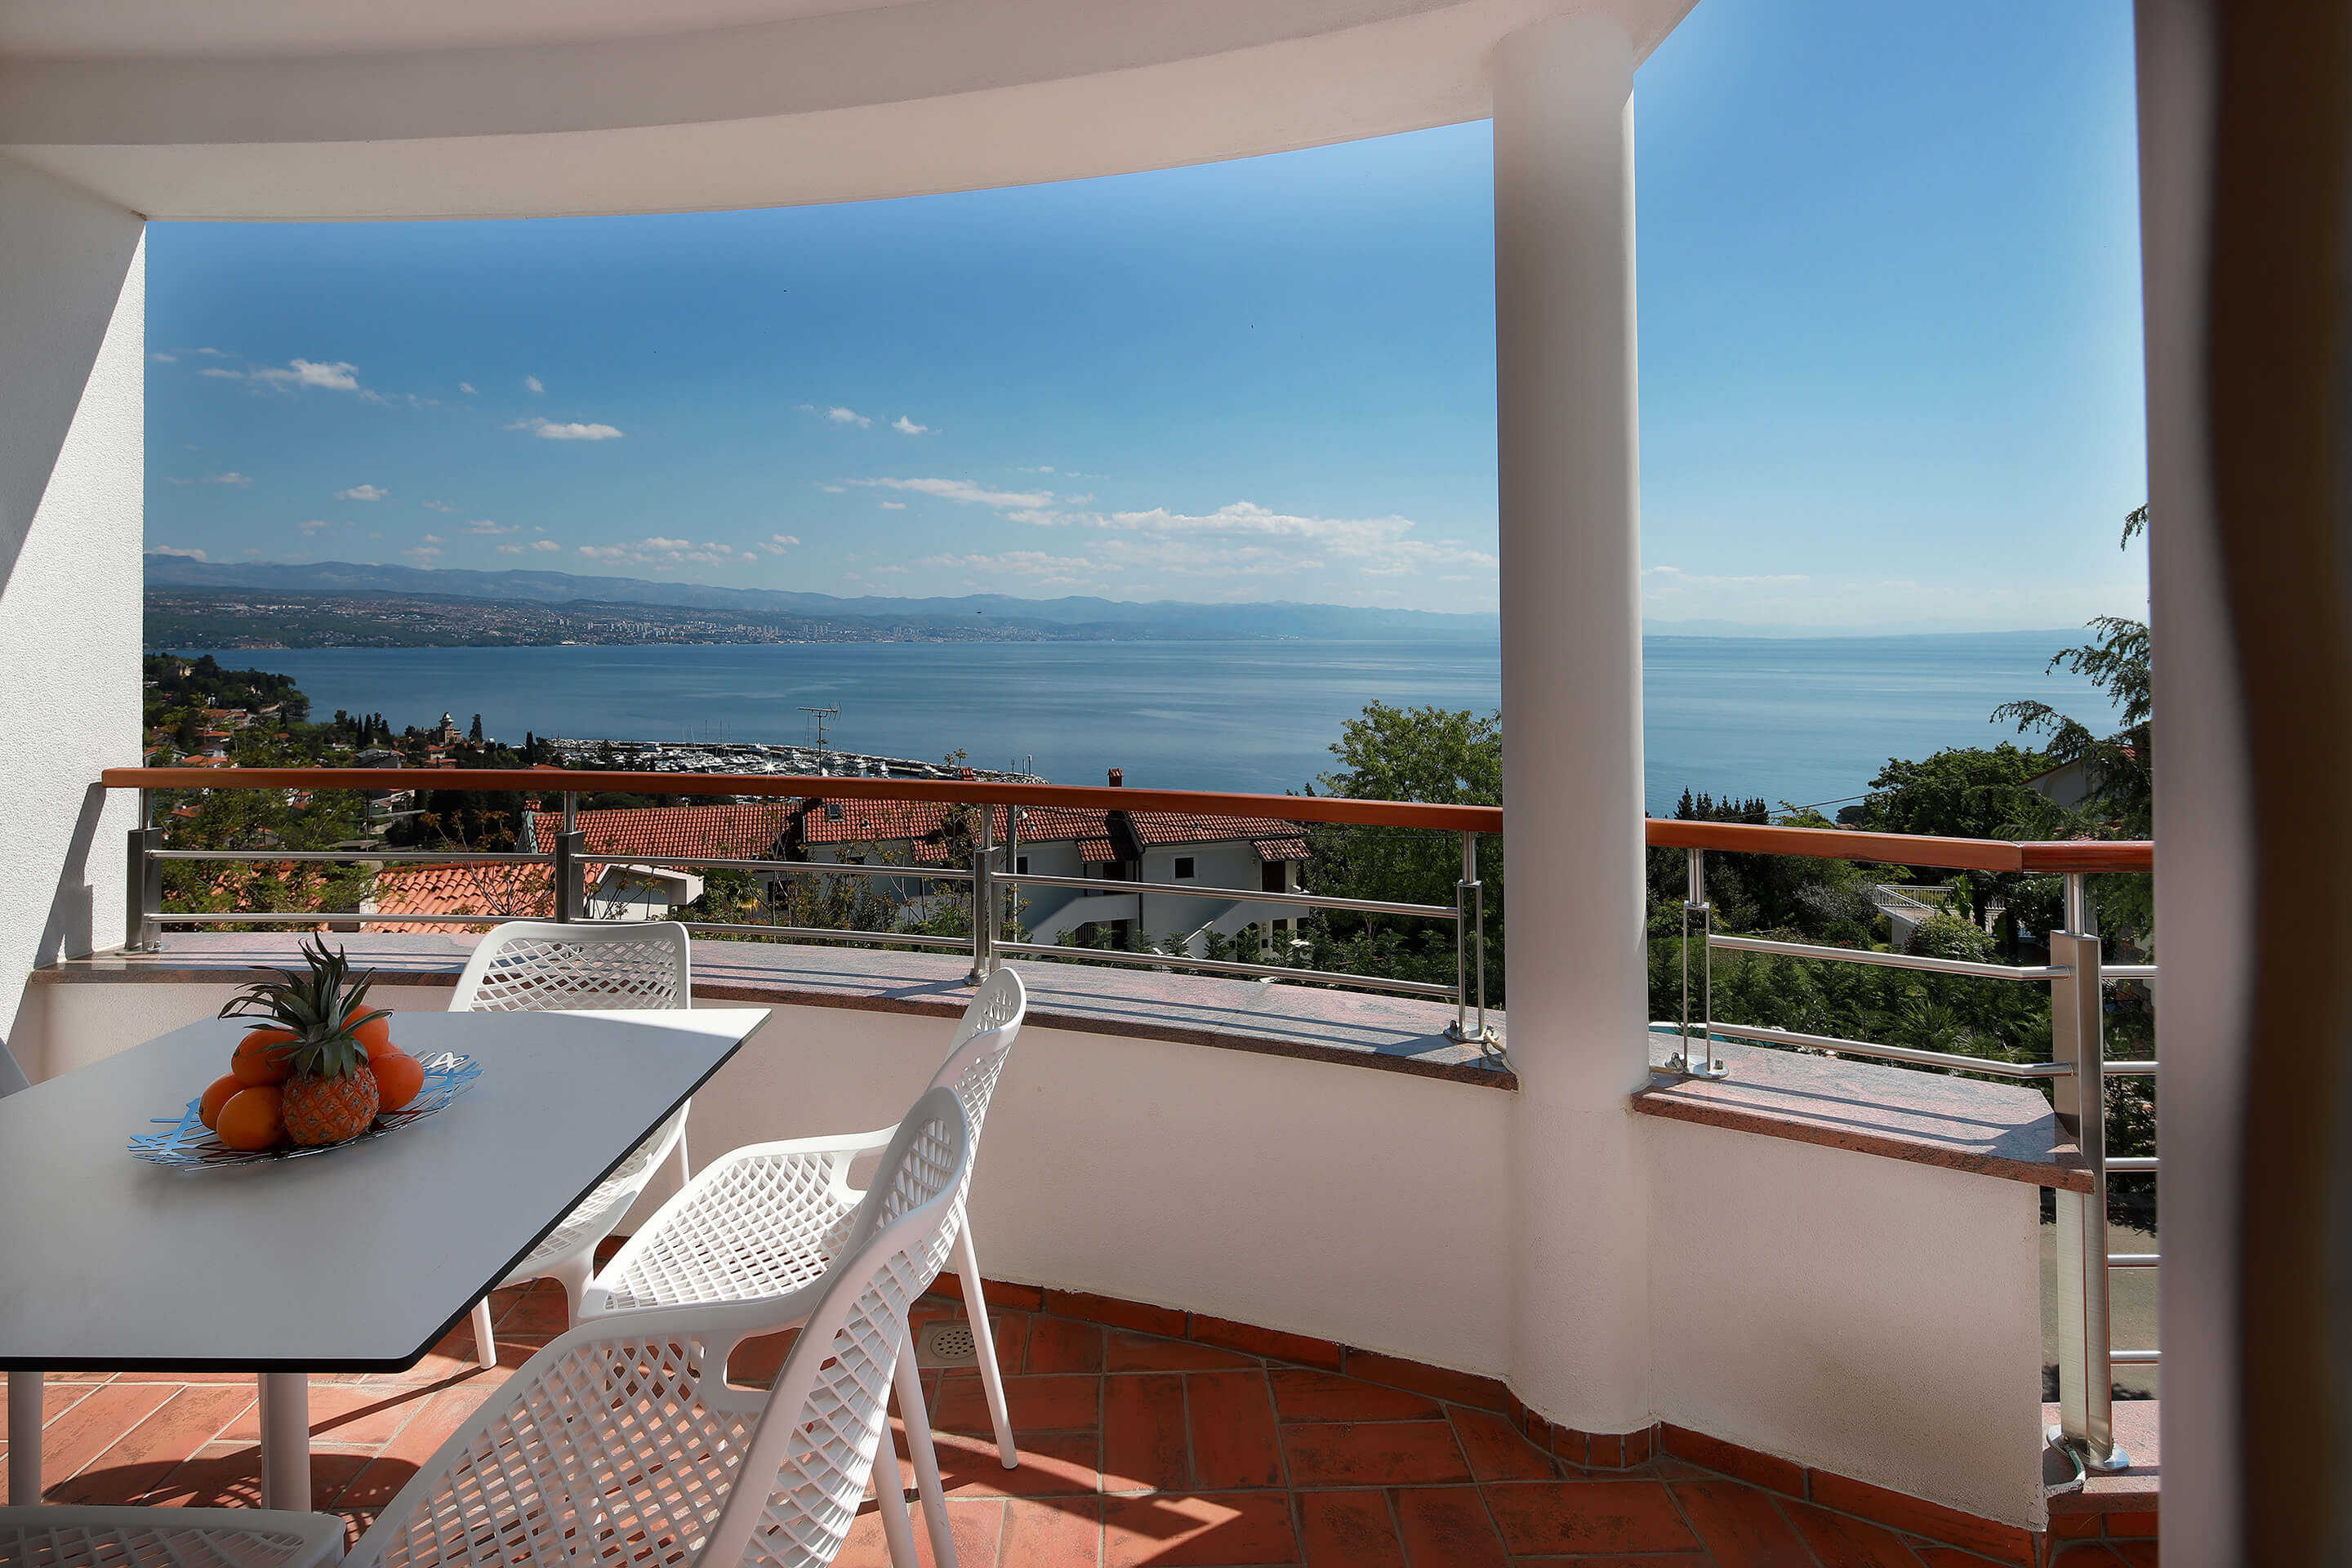 A4 balcony - siting area - sea view